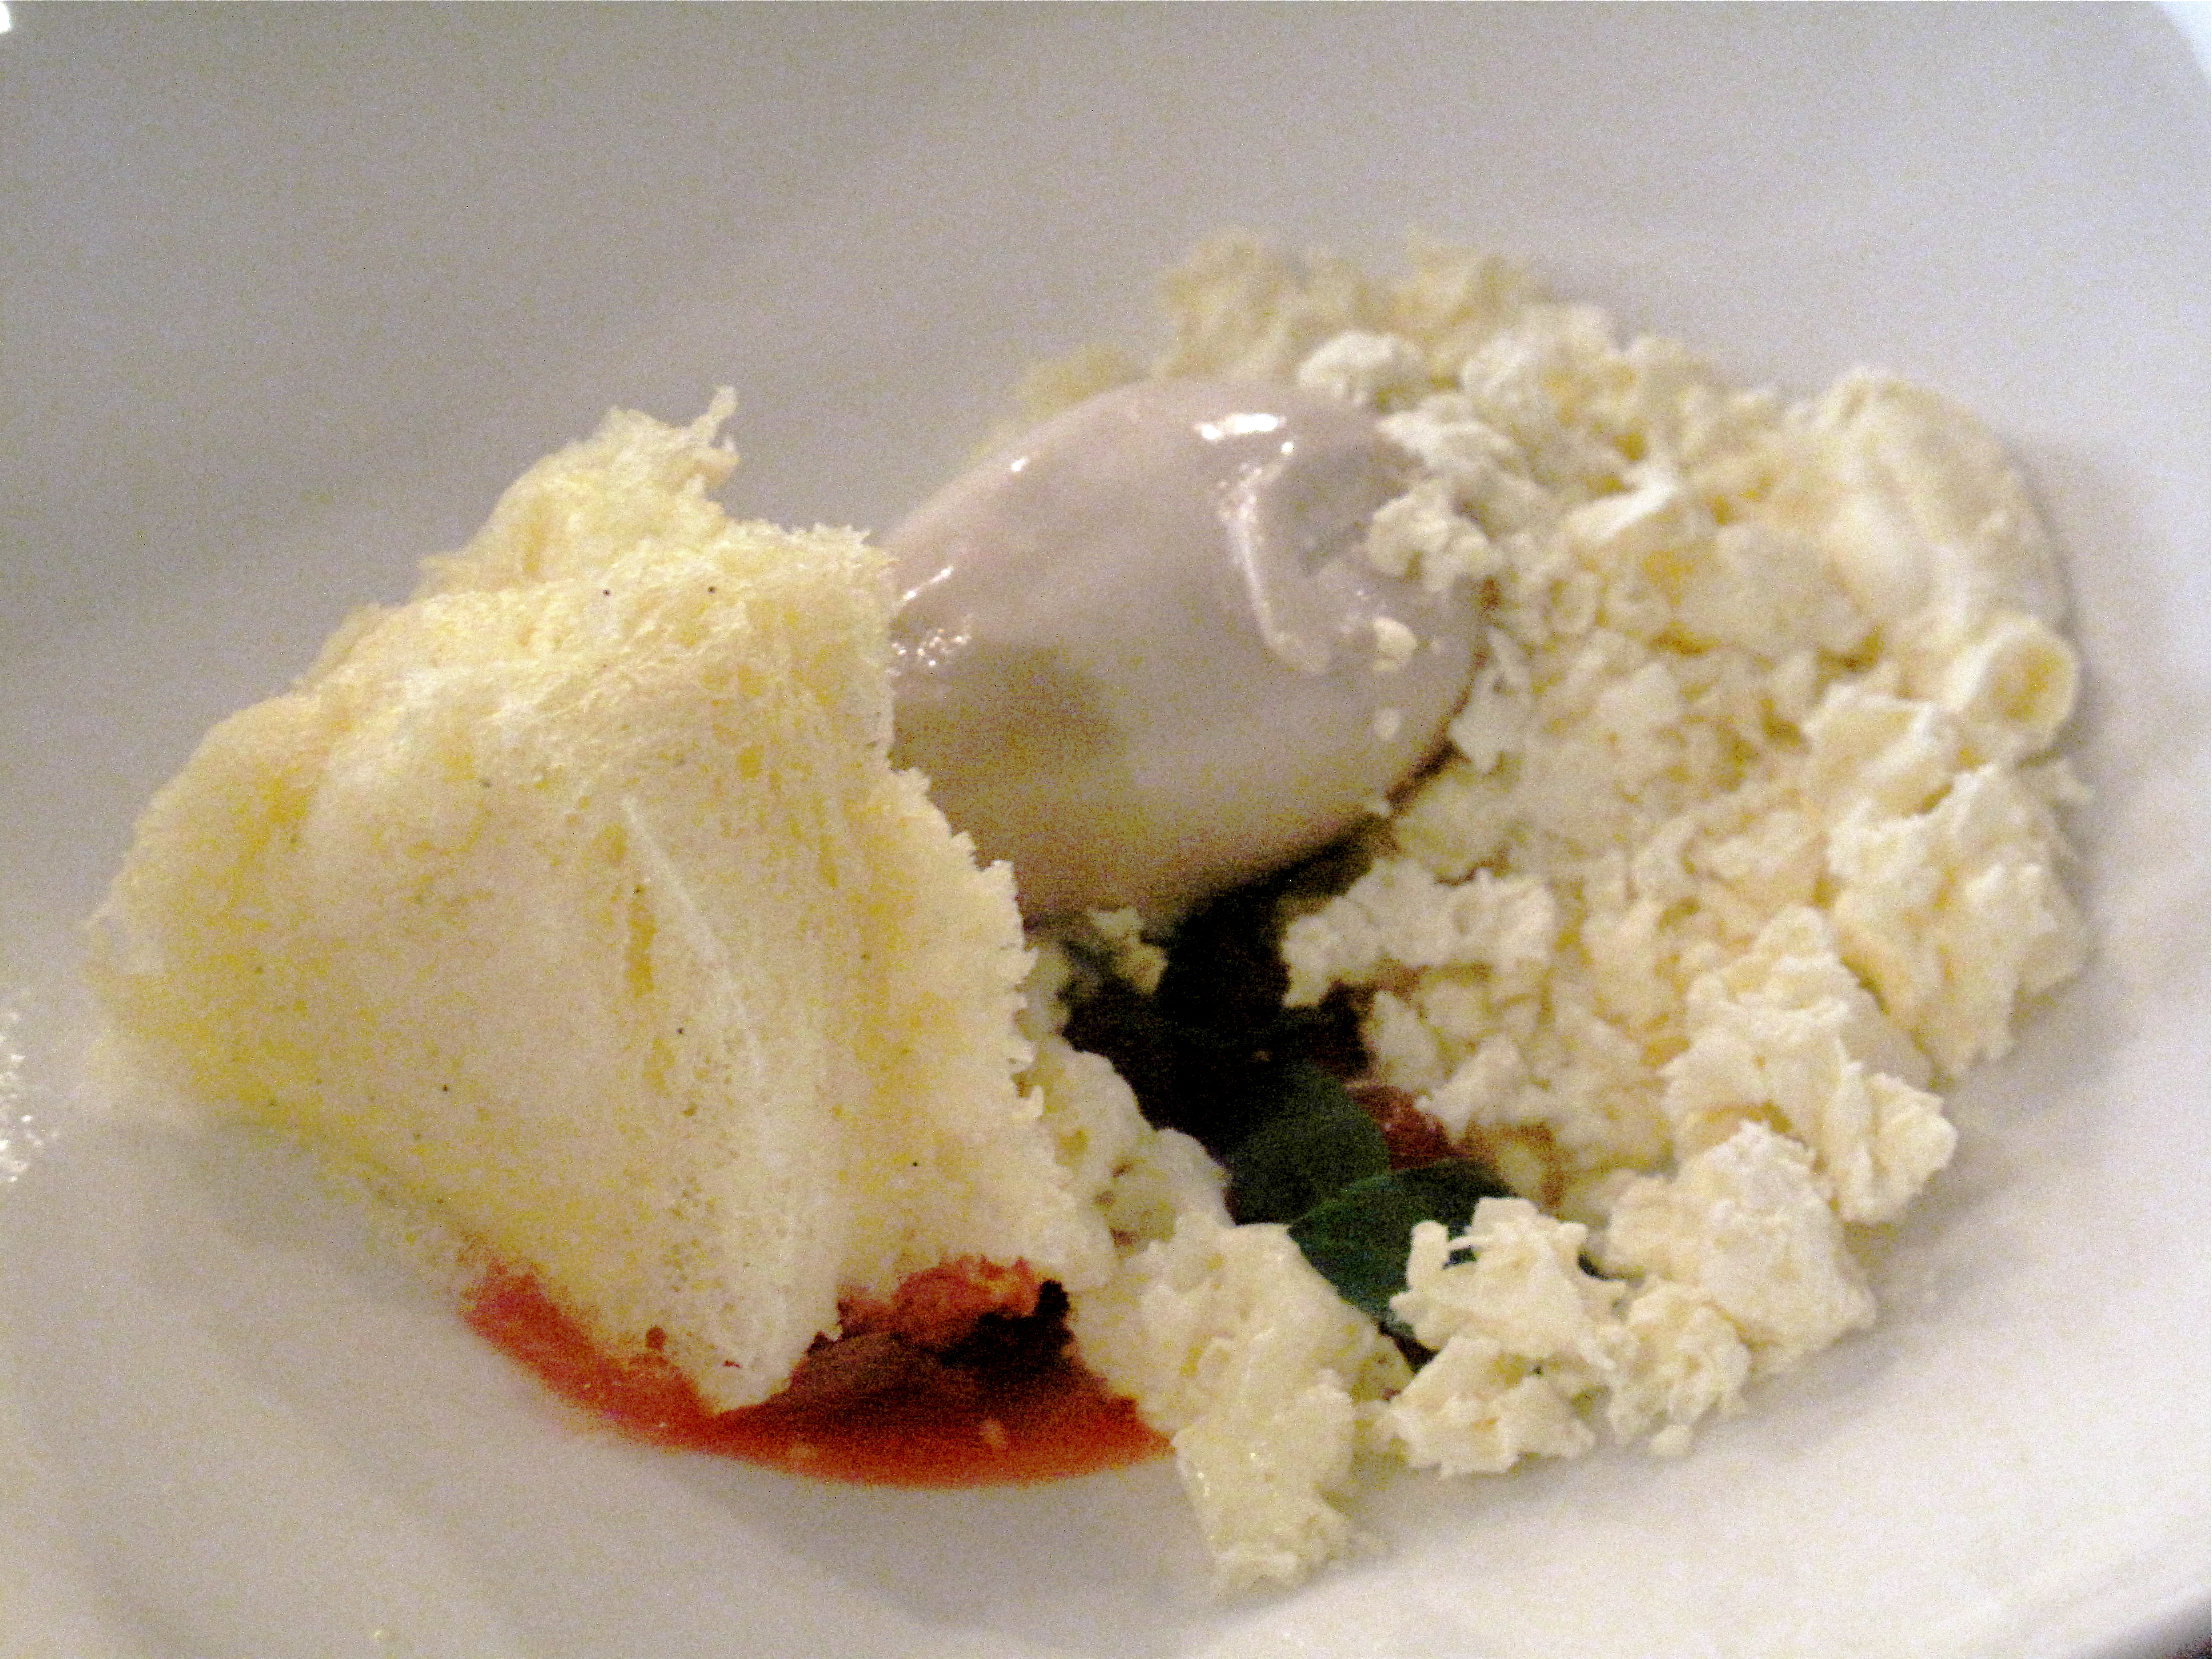 The microwaved cake was served on compressed strawberries (compressed fruit was everywhere in Aspen) with homemade bean ice cream and lemon curd chips.